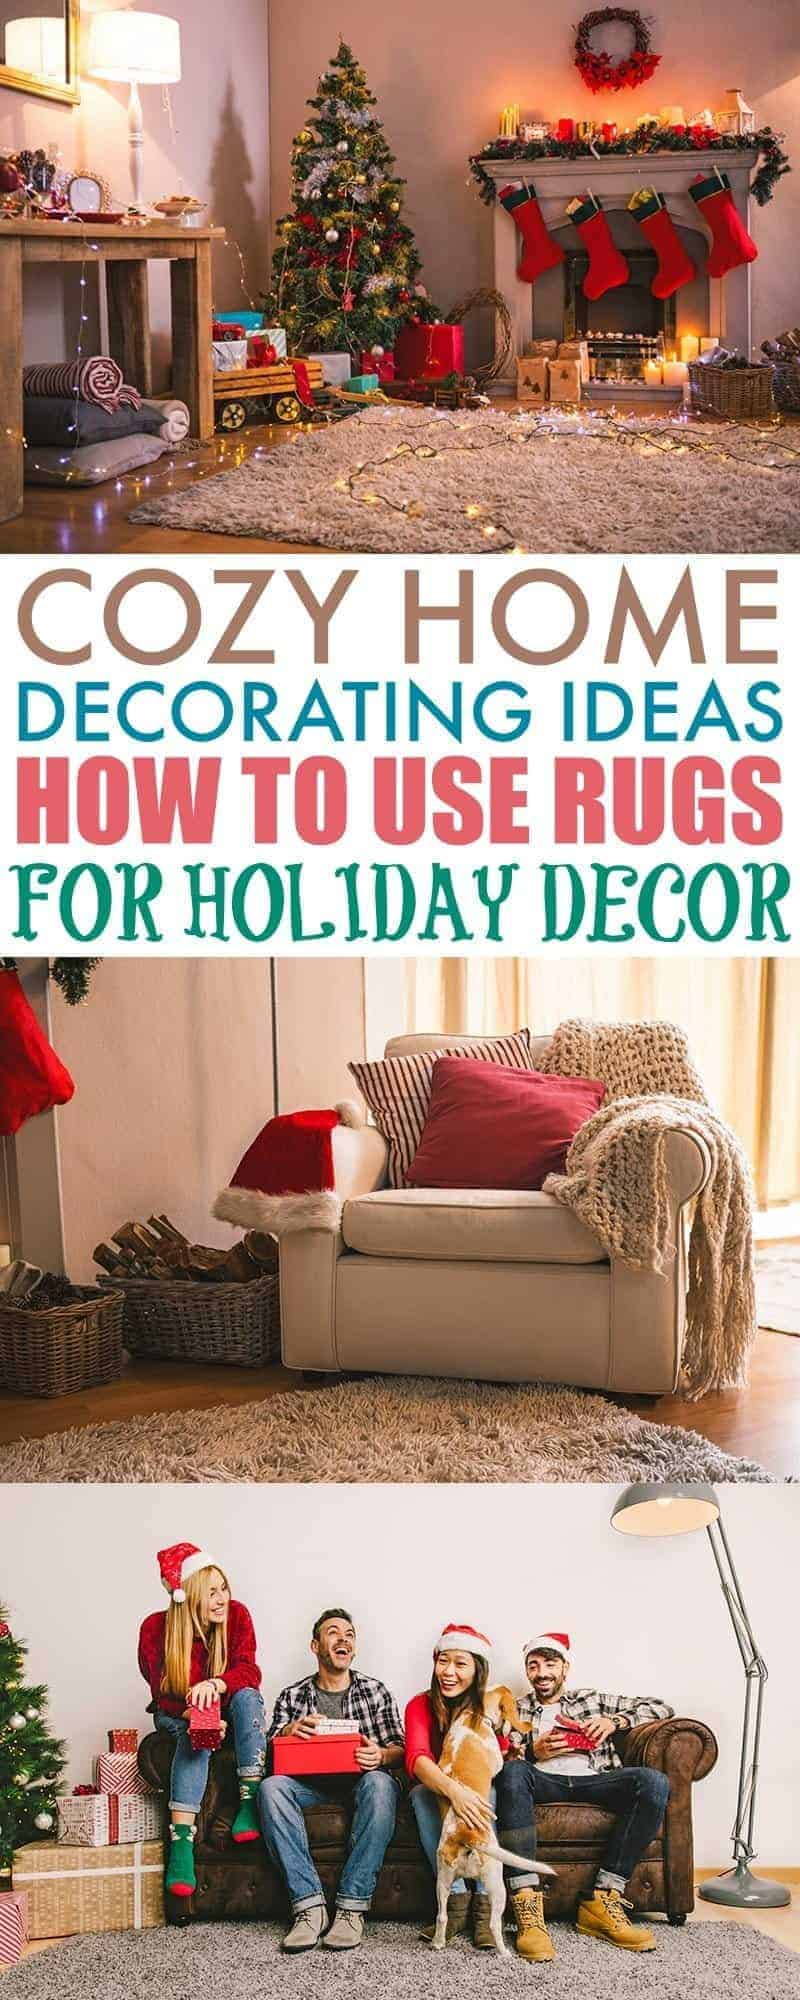 Cozy home decorating ideas how to use rugs for holiday decor Home decorating ideas for christmas holiday